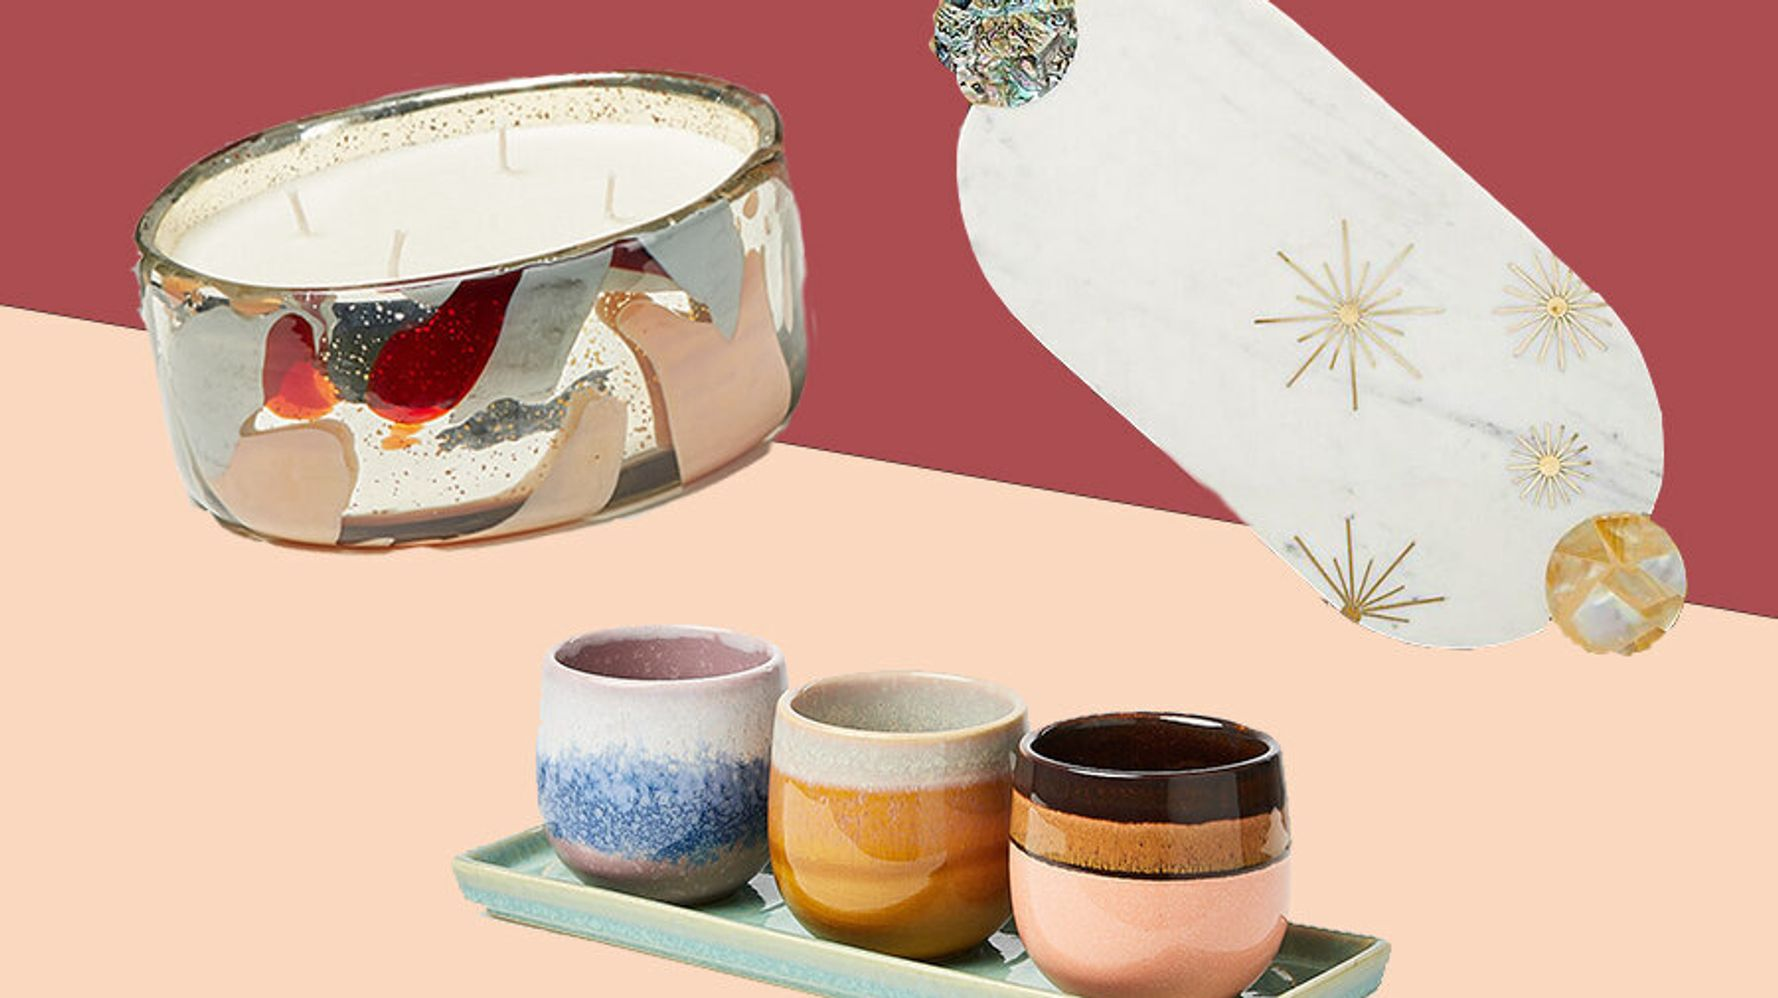 19 Gorgeous Gifts For The Home – Because We're Not Going Anywhere Else